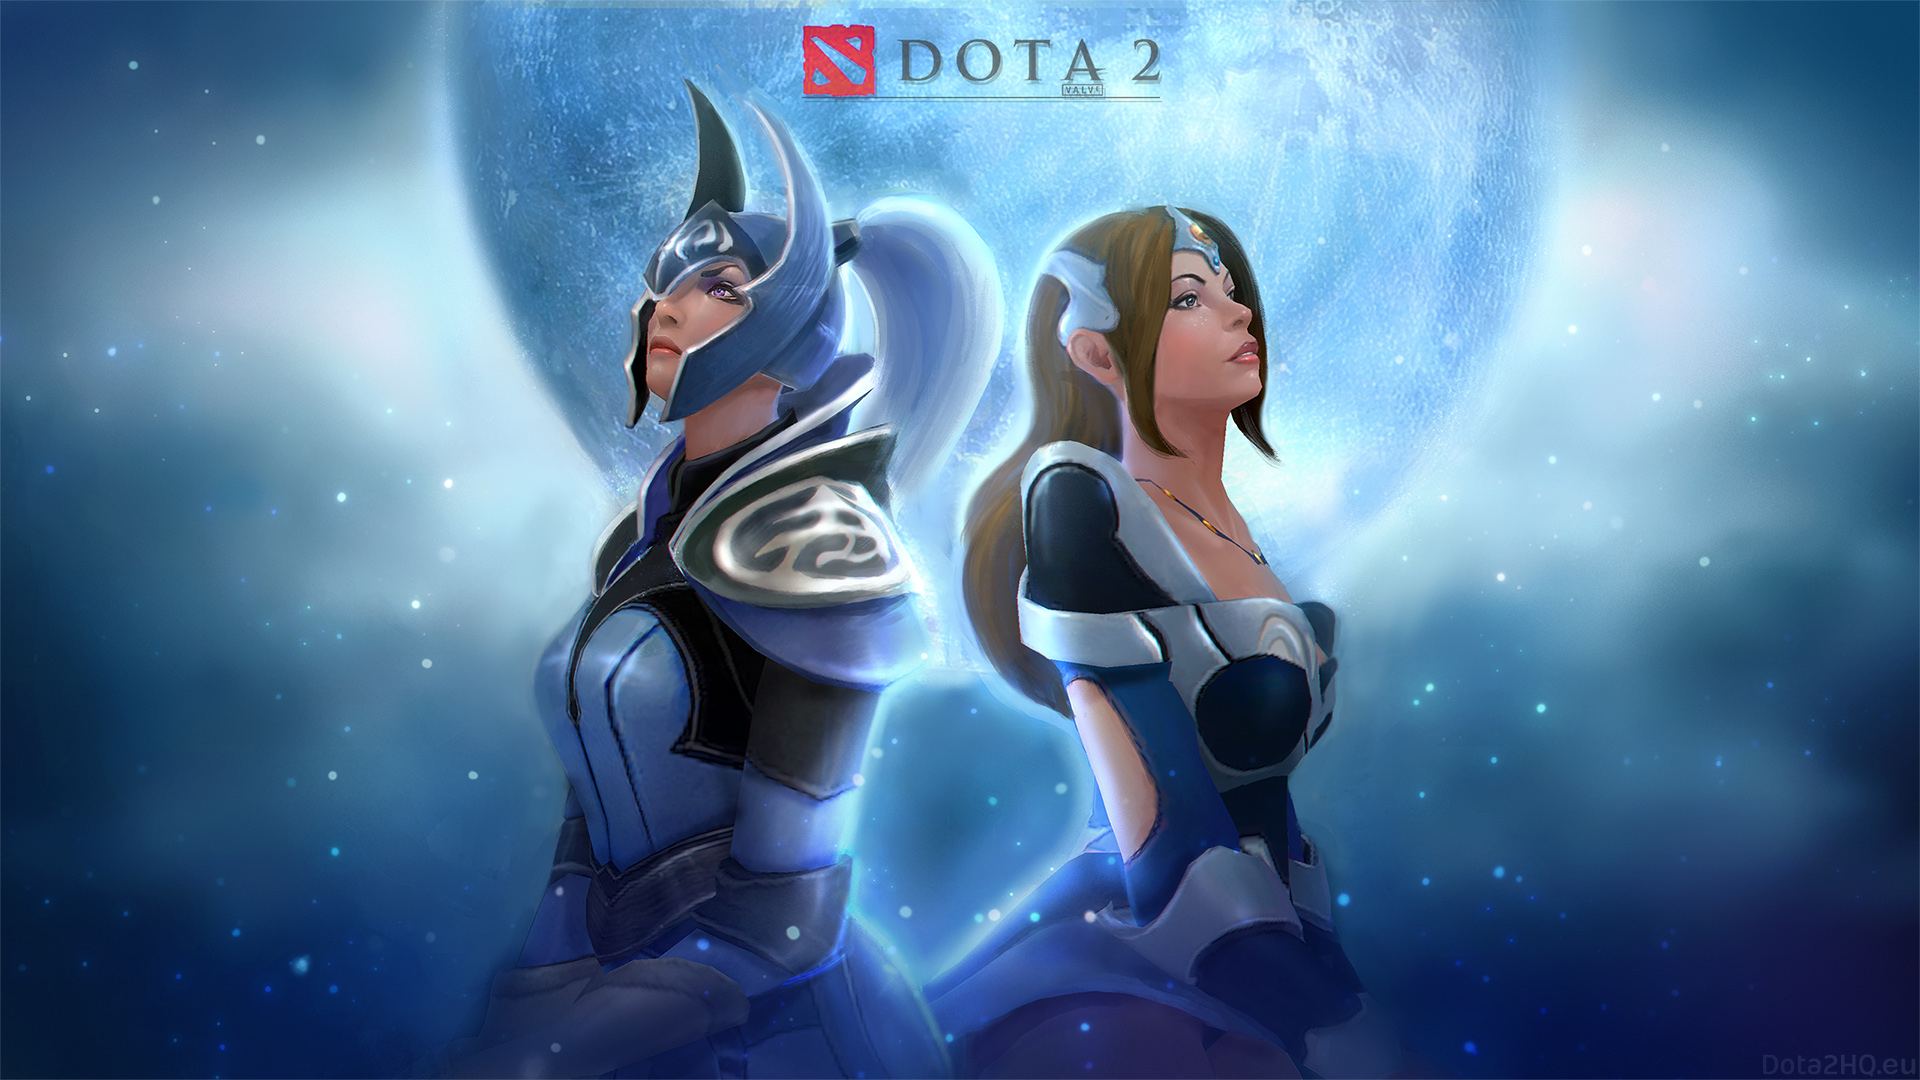 dota2 wallpapers.seoplus.com.ua 3